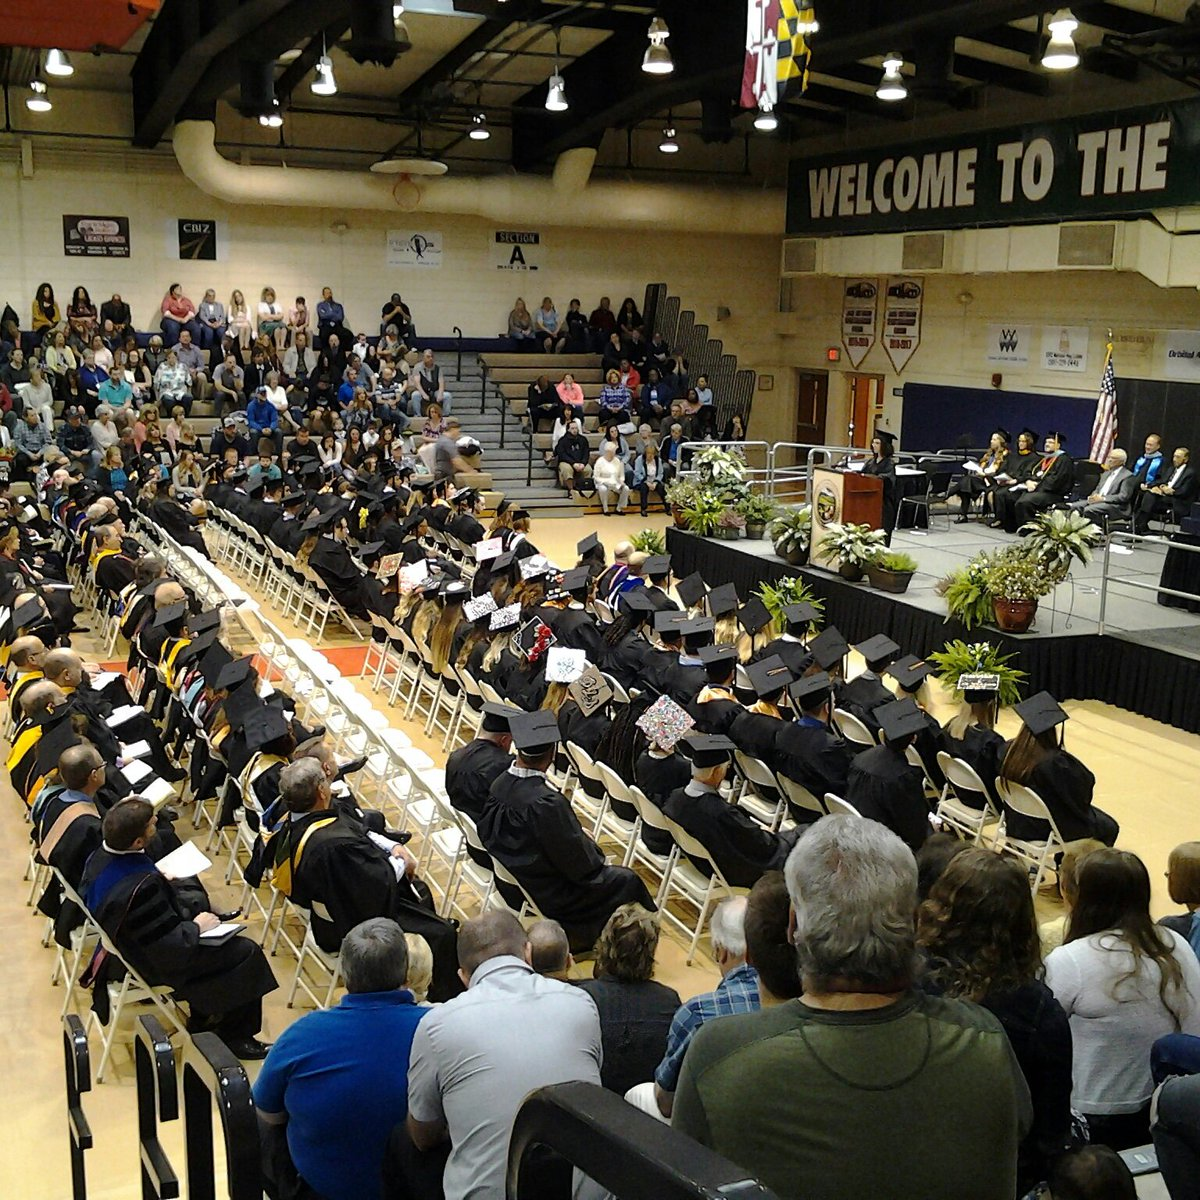 If you can&#39;t be with us today, you can join us live on Facebook.    #Congratulations #Classof2018   #EngageYourFuture #alleganycollegeofmaryland #ExperienceACM #hardworkpaysoff #bigstep #Commencement2018 #graduation #GoTrojans<br>http://pic.twitter.com/jUQ3dbeWEr